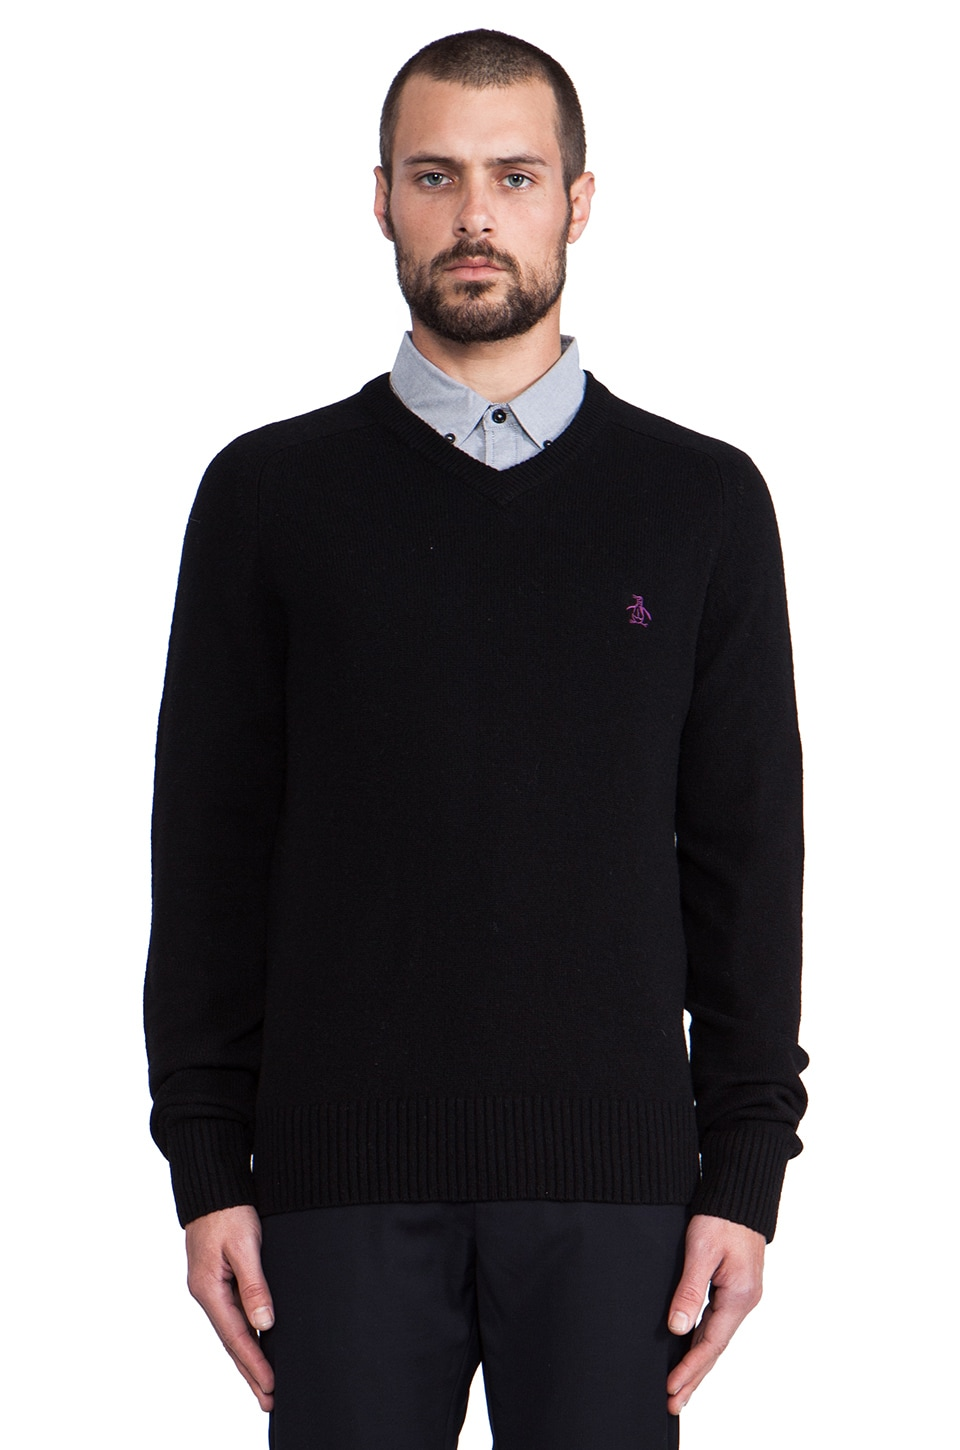 Penguin V Neck Sweater in True Black